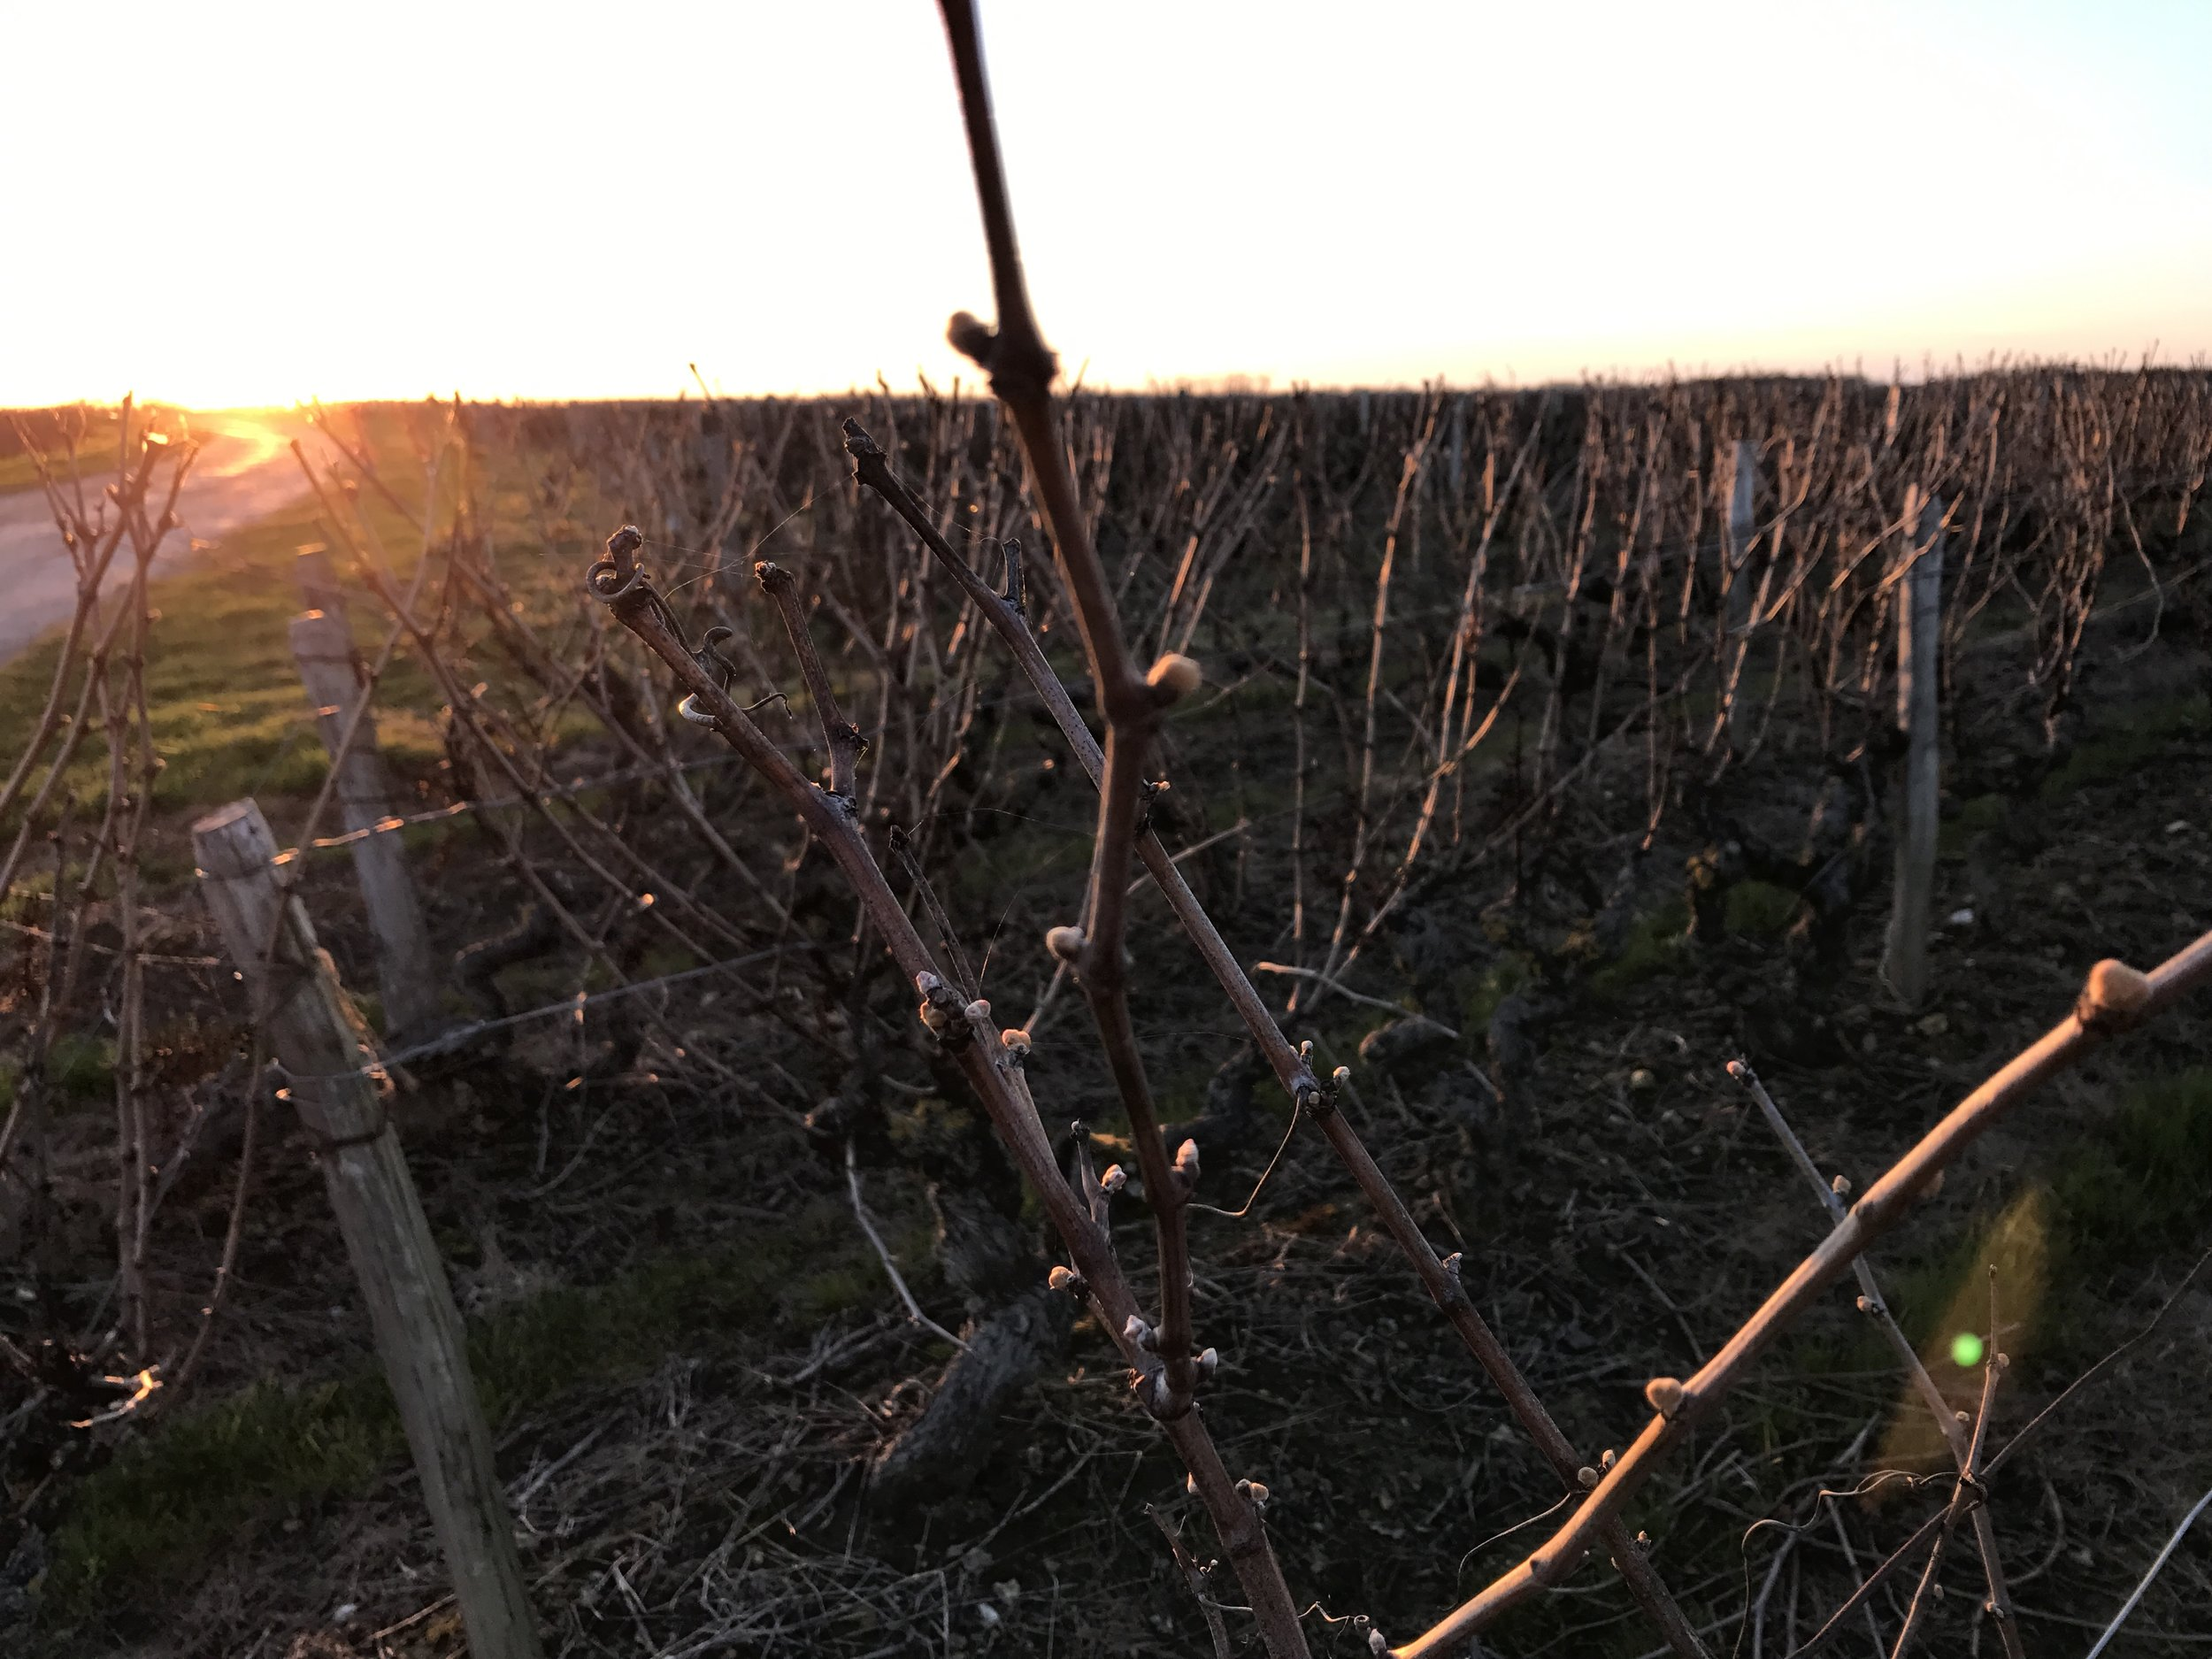 Sunset in Vouvray